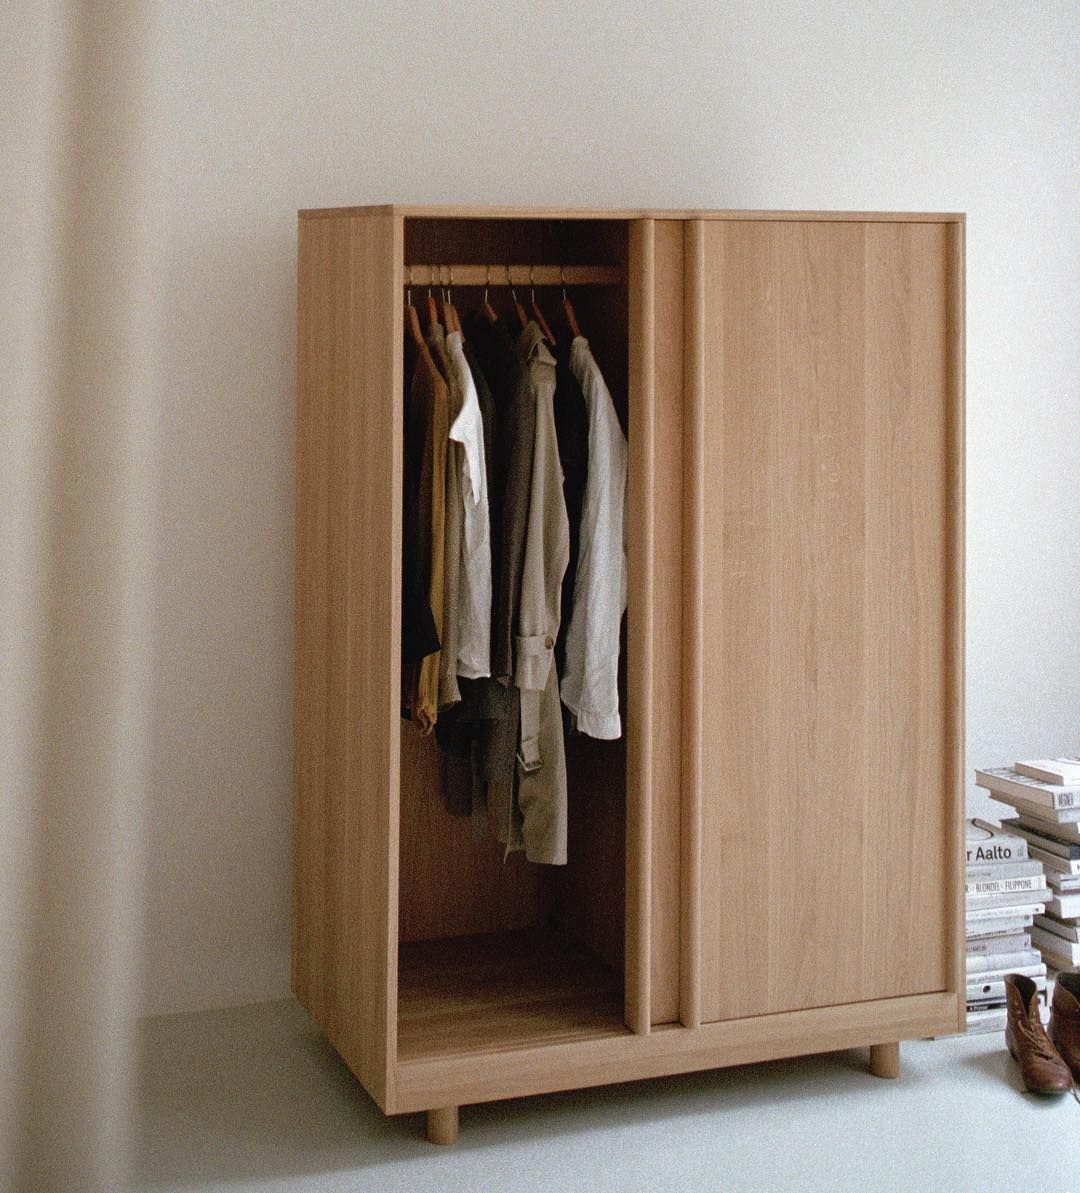 High Quality Freestanding Wardrobe Entirely Built From Solid Oak In Stock Both In Natural Oak And Forest Sliding Wardrobe Doors Furniture Wardrobe Furniture